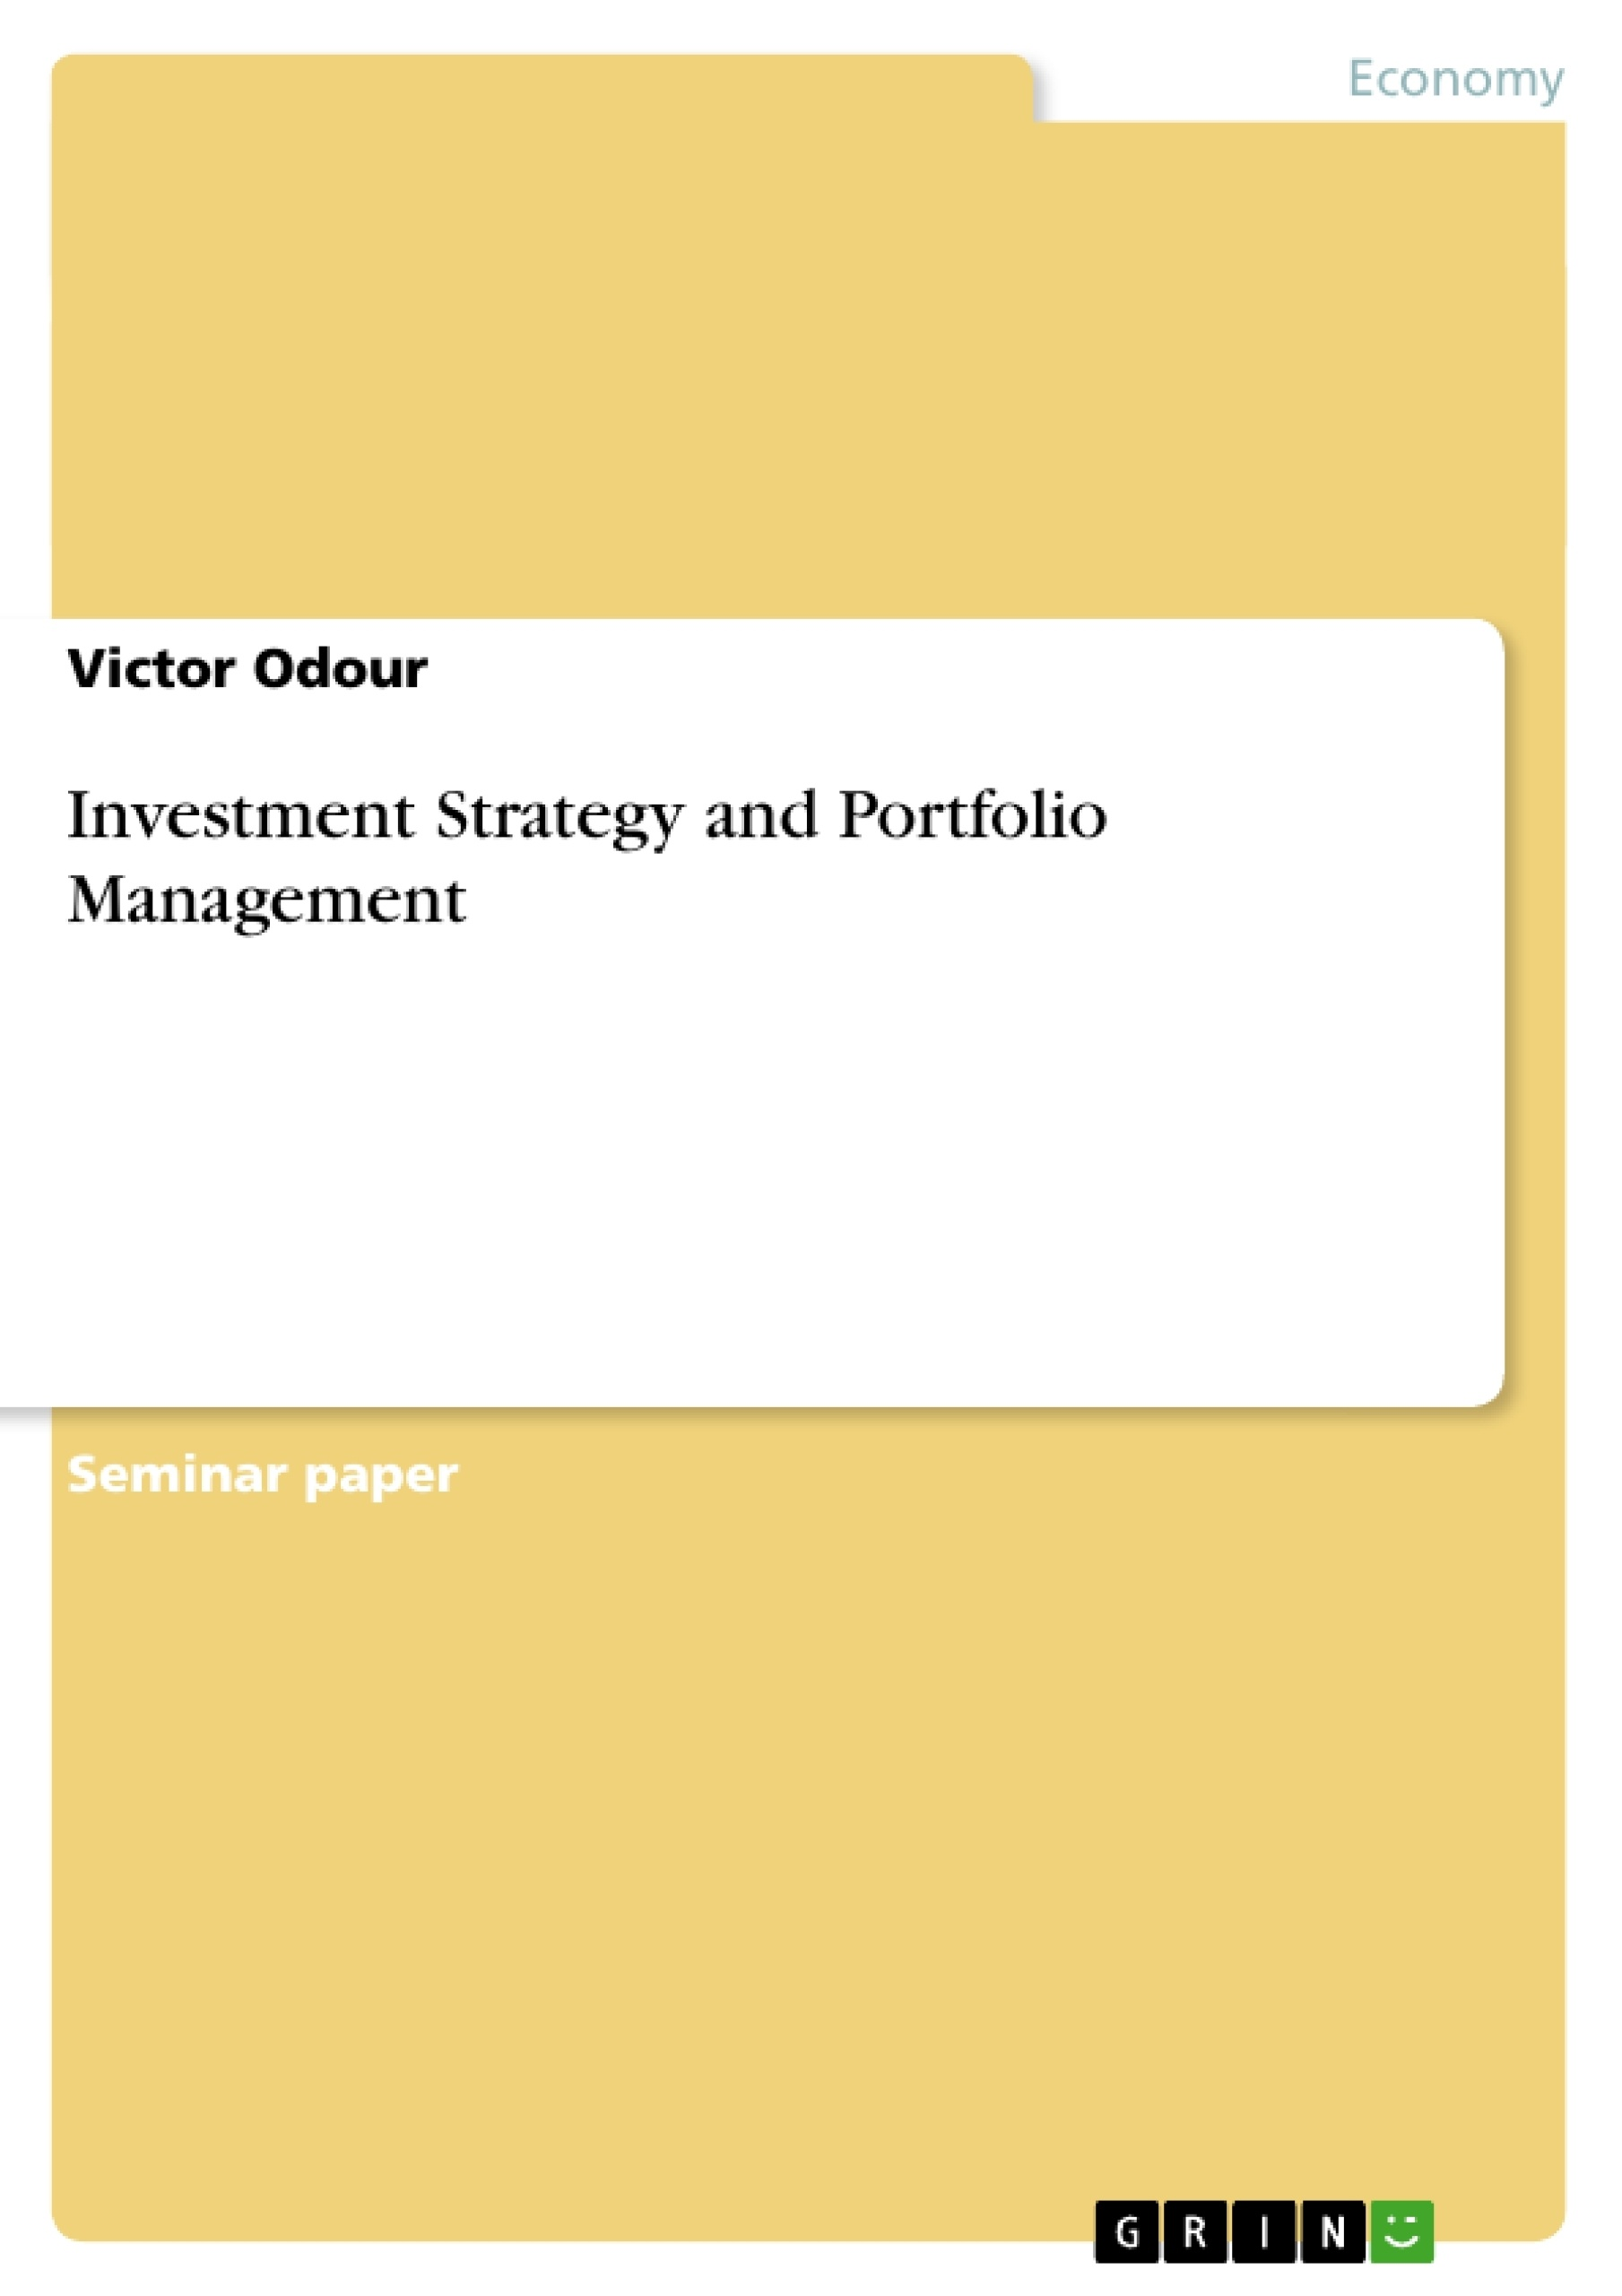 Title: Investment Strategy and Portfolio Management